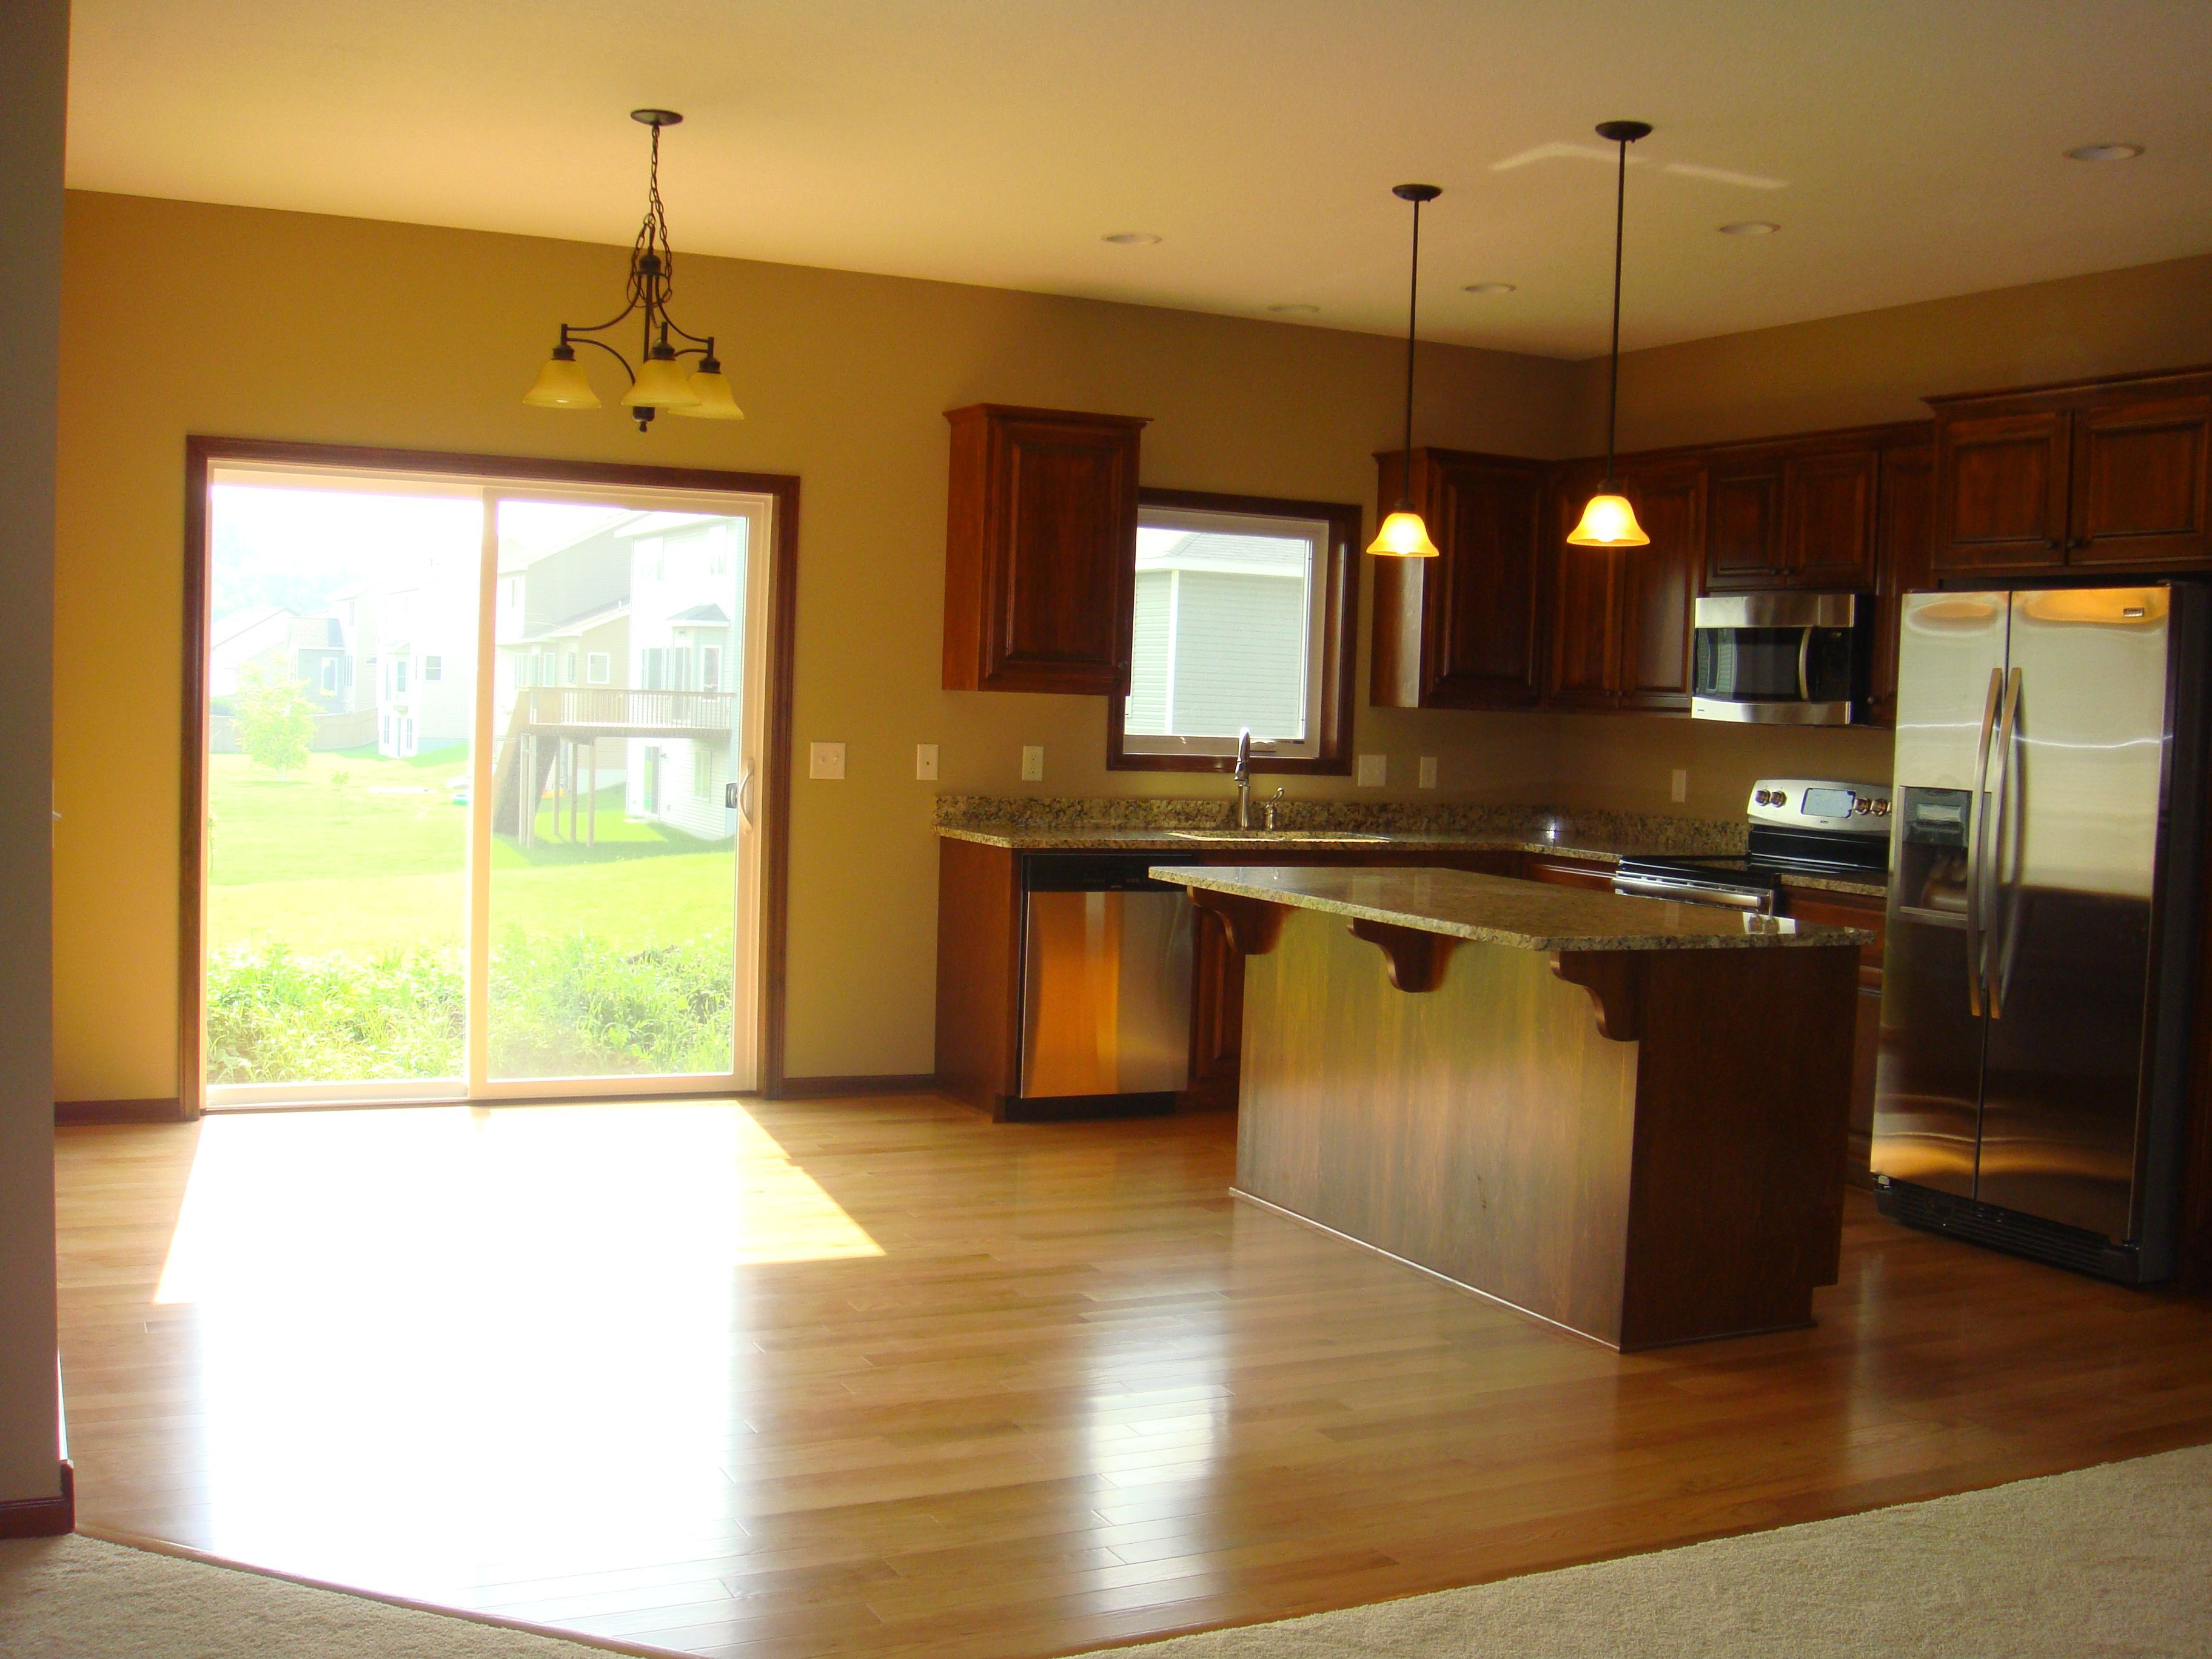 bi level home split level kitchen remodel This is exactly what our layout would look like after a renovation